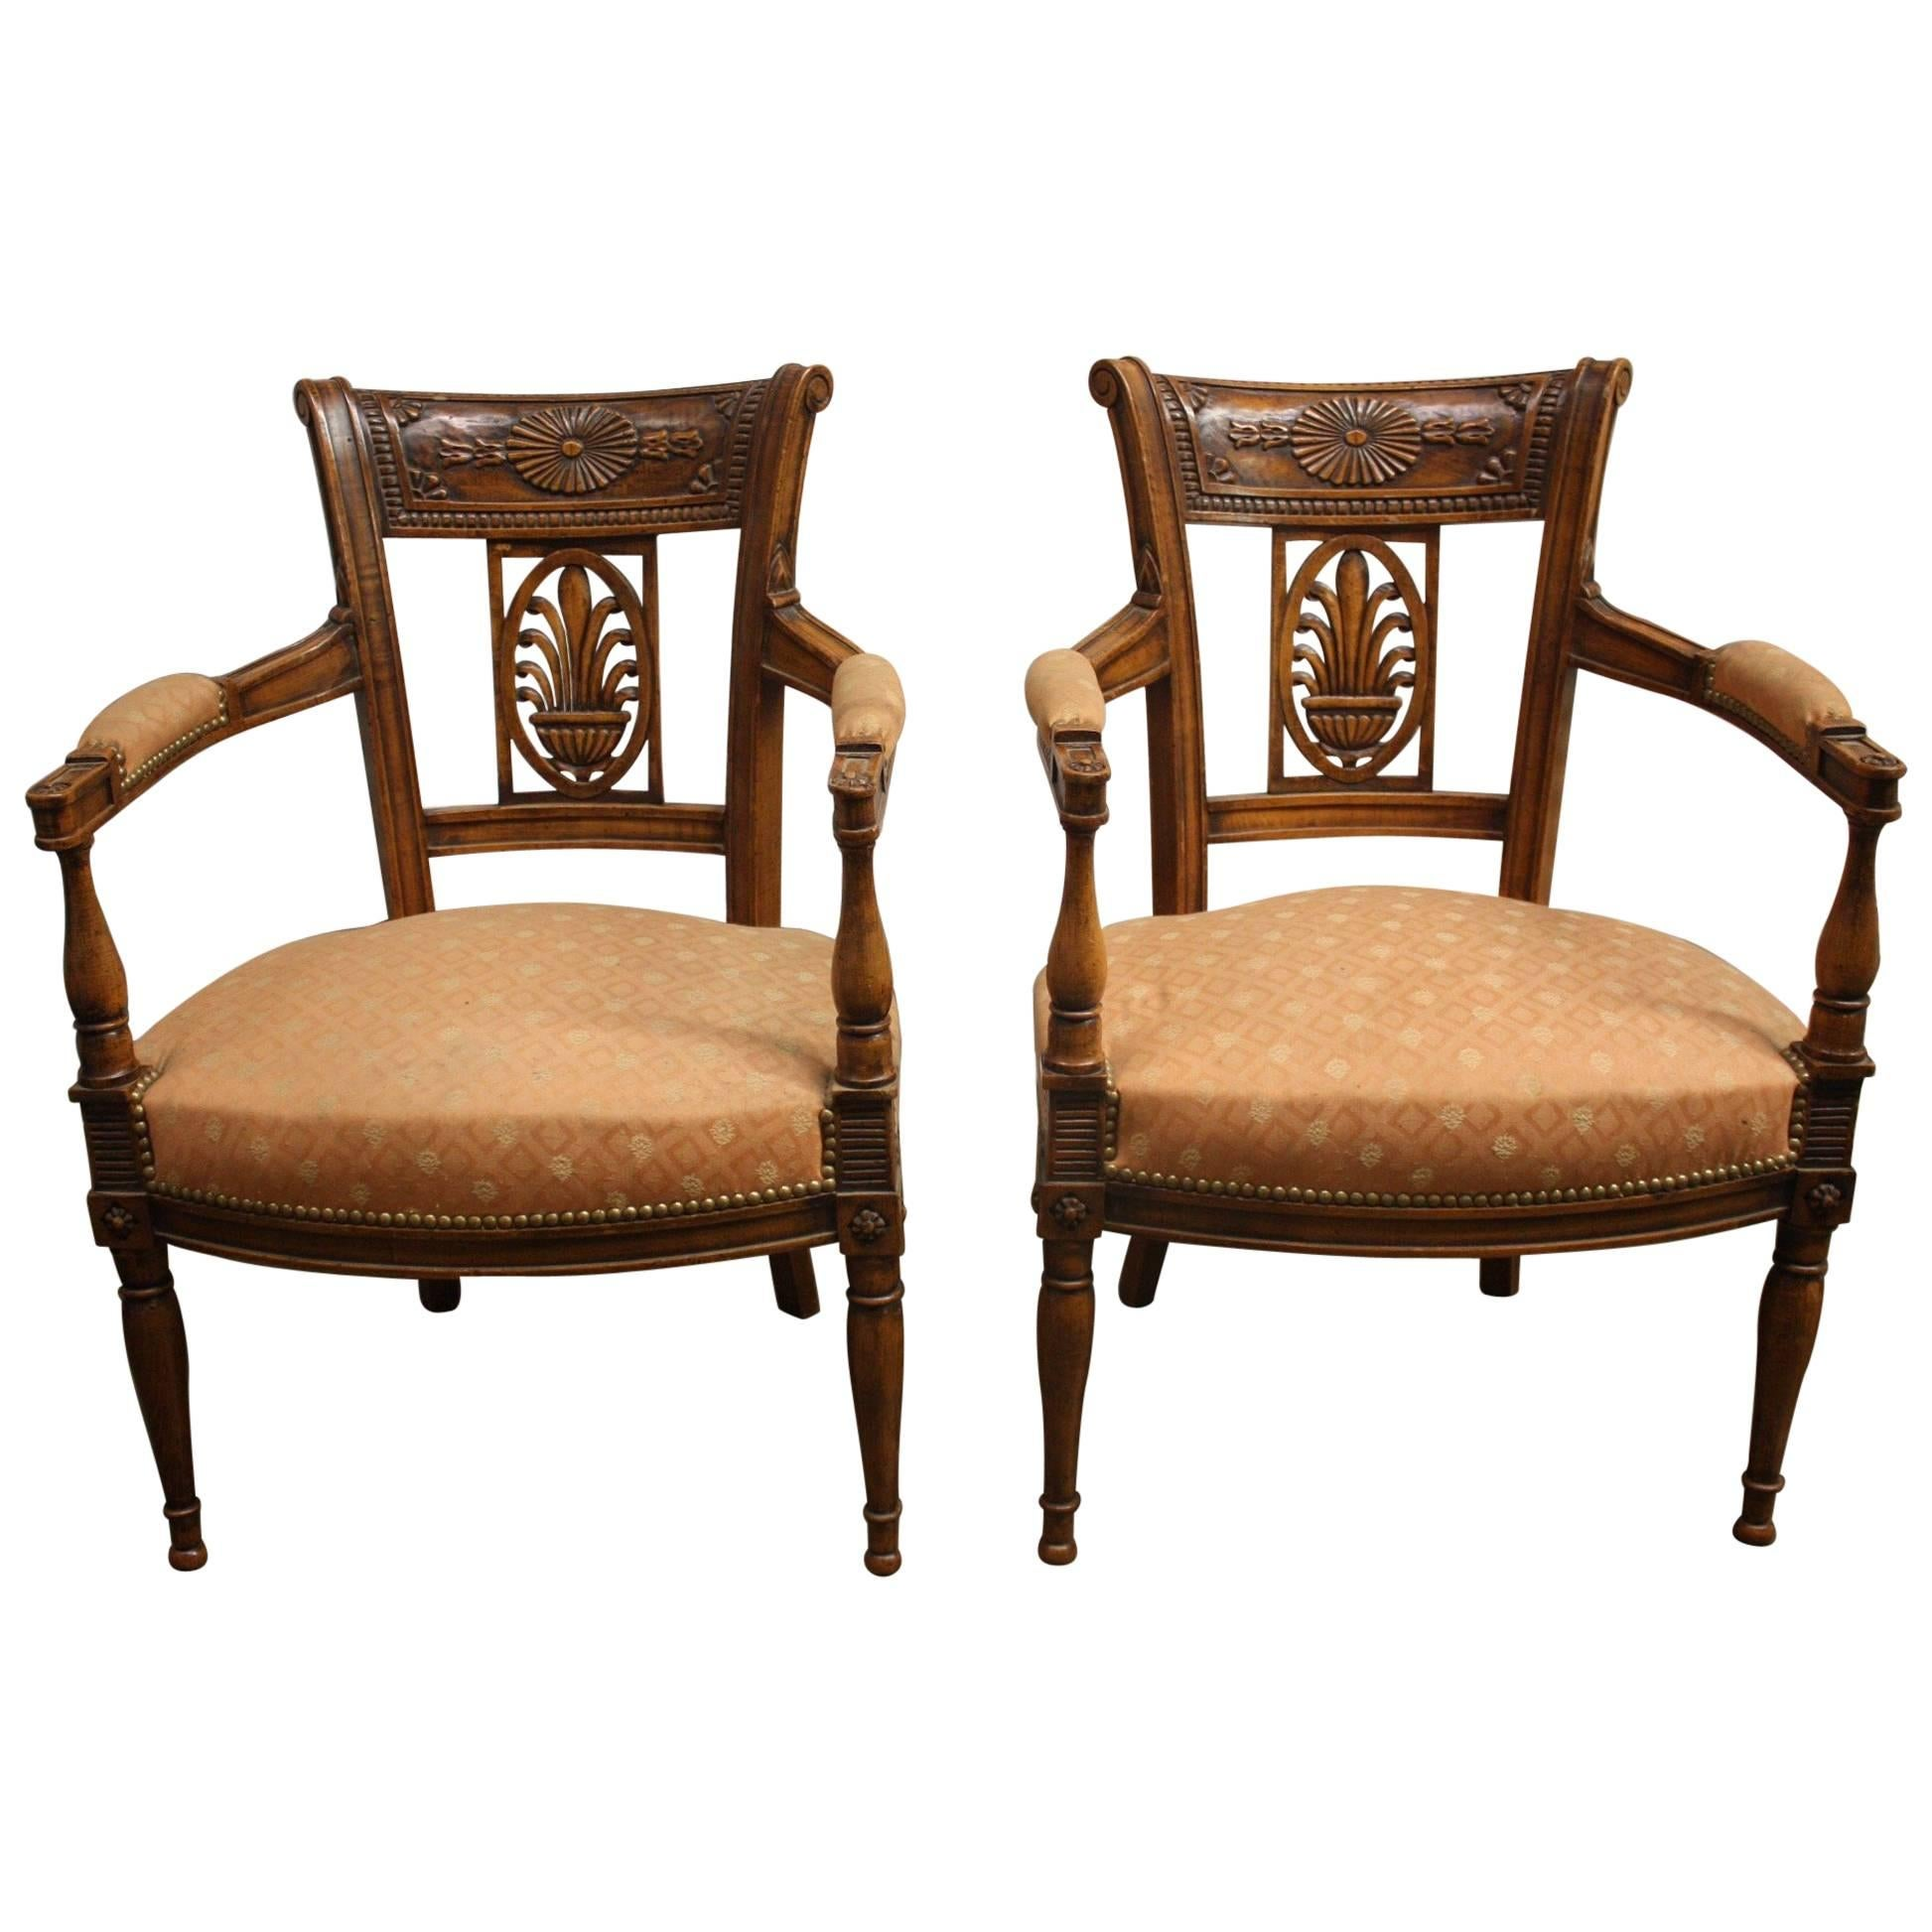 Beautiful Pair of 19th Century French Armchairs